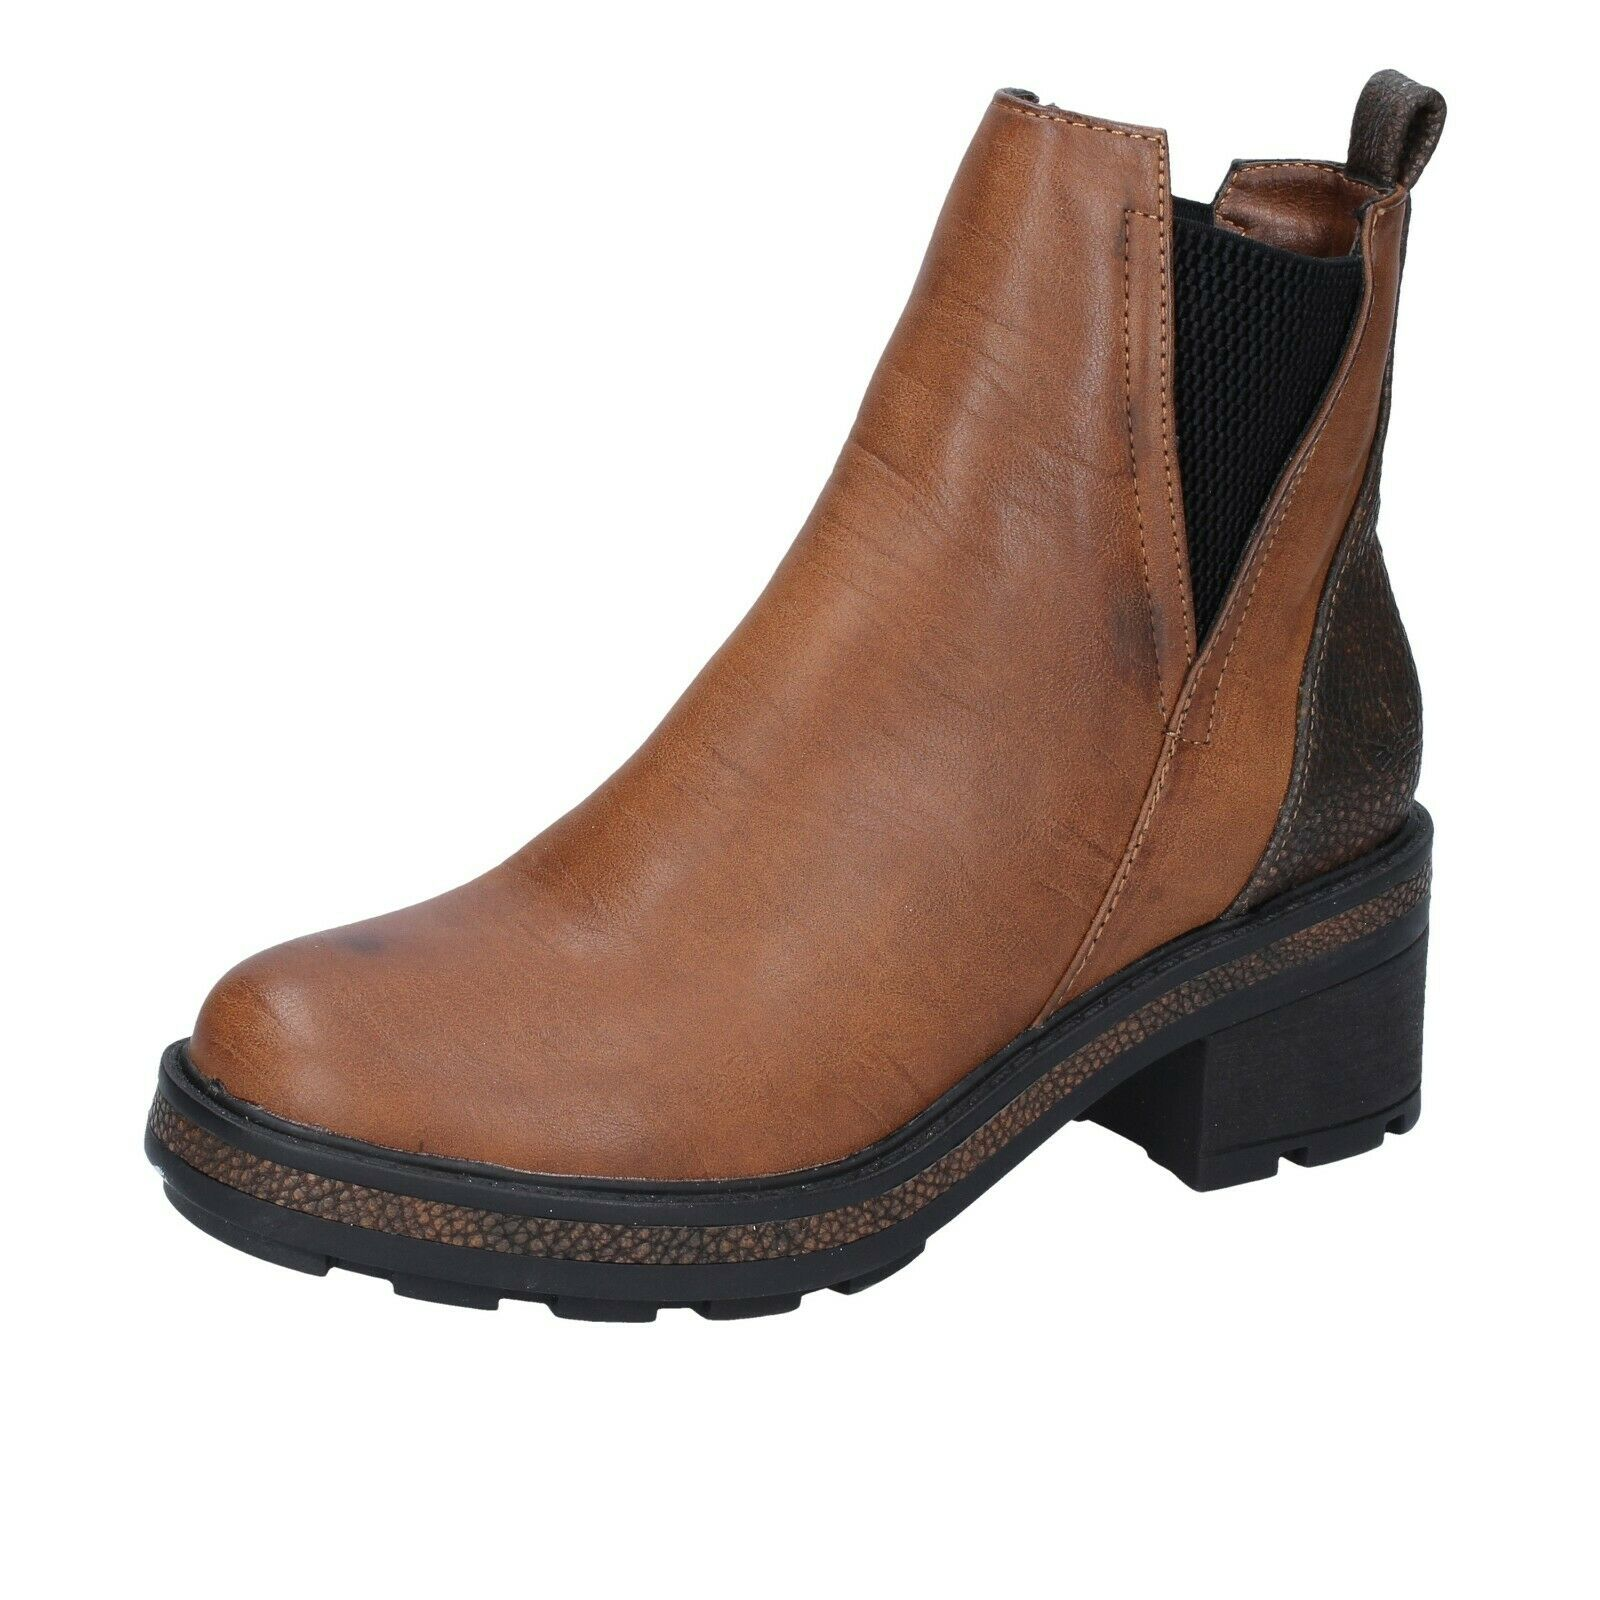 Femme chaussures Francesco Milano 3 (UE 36) Bottines en cuir marron BR36-36